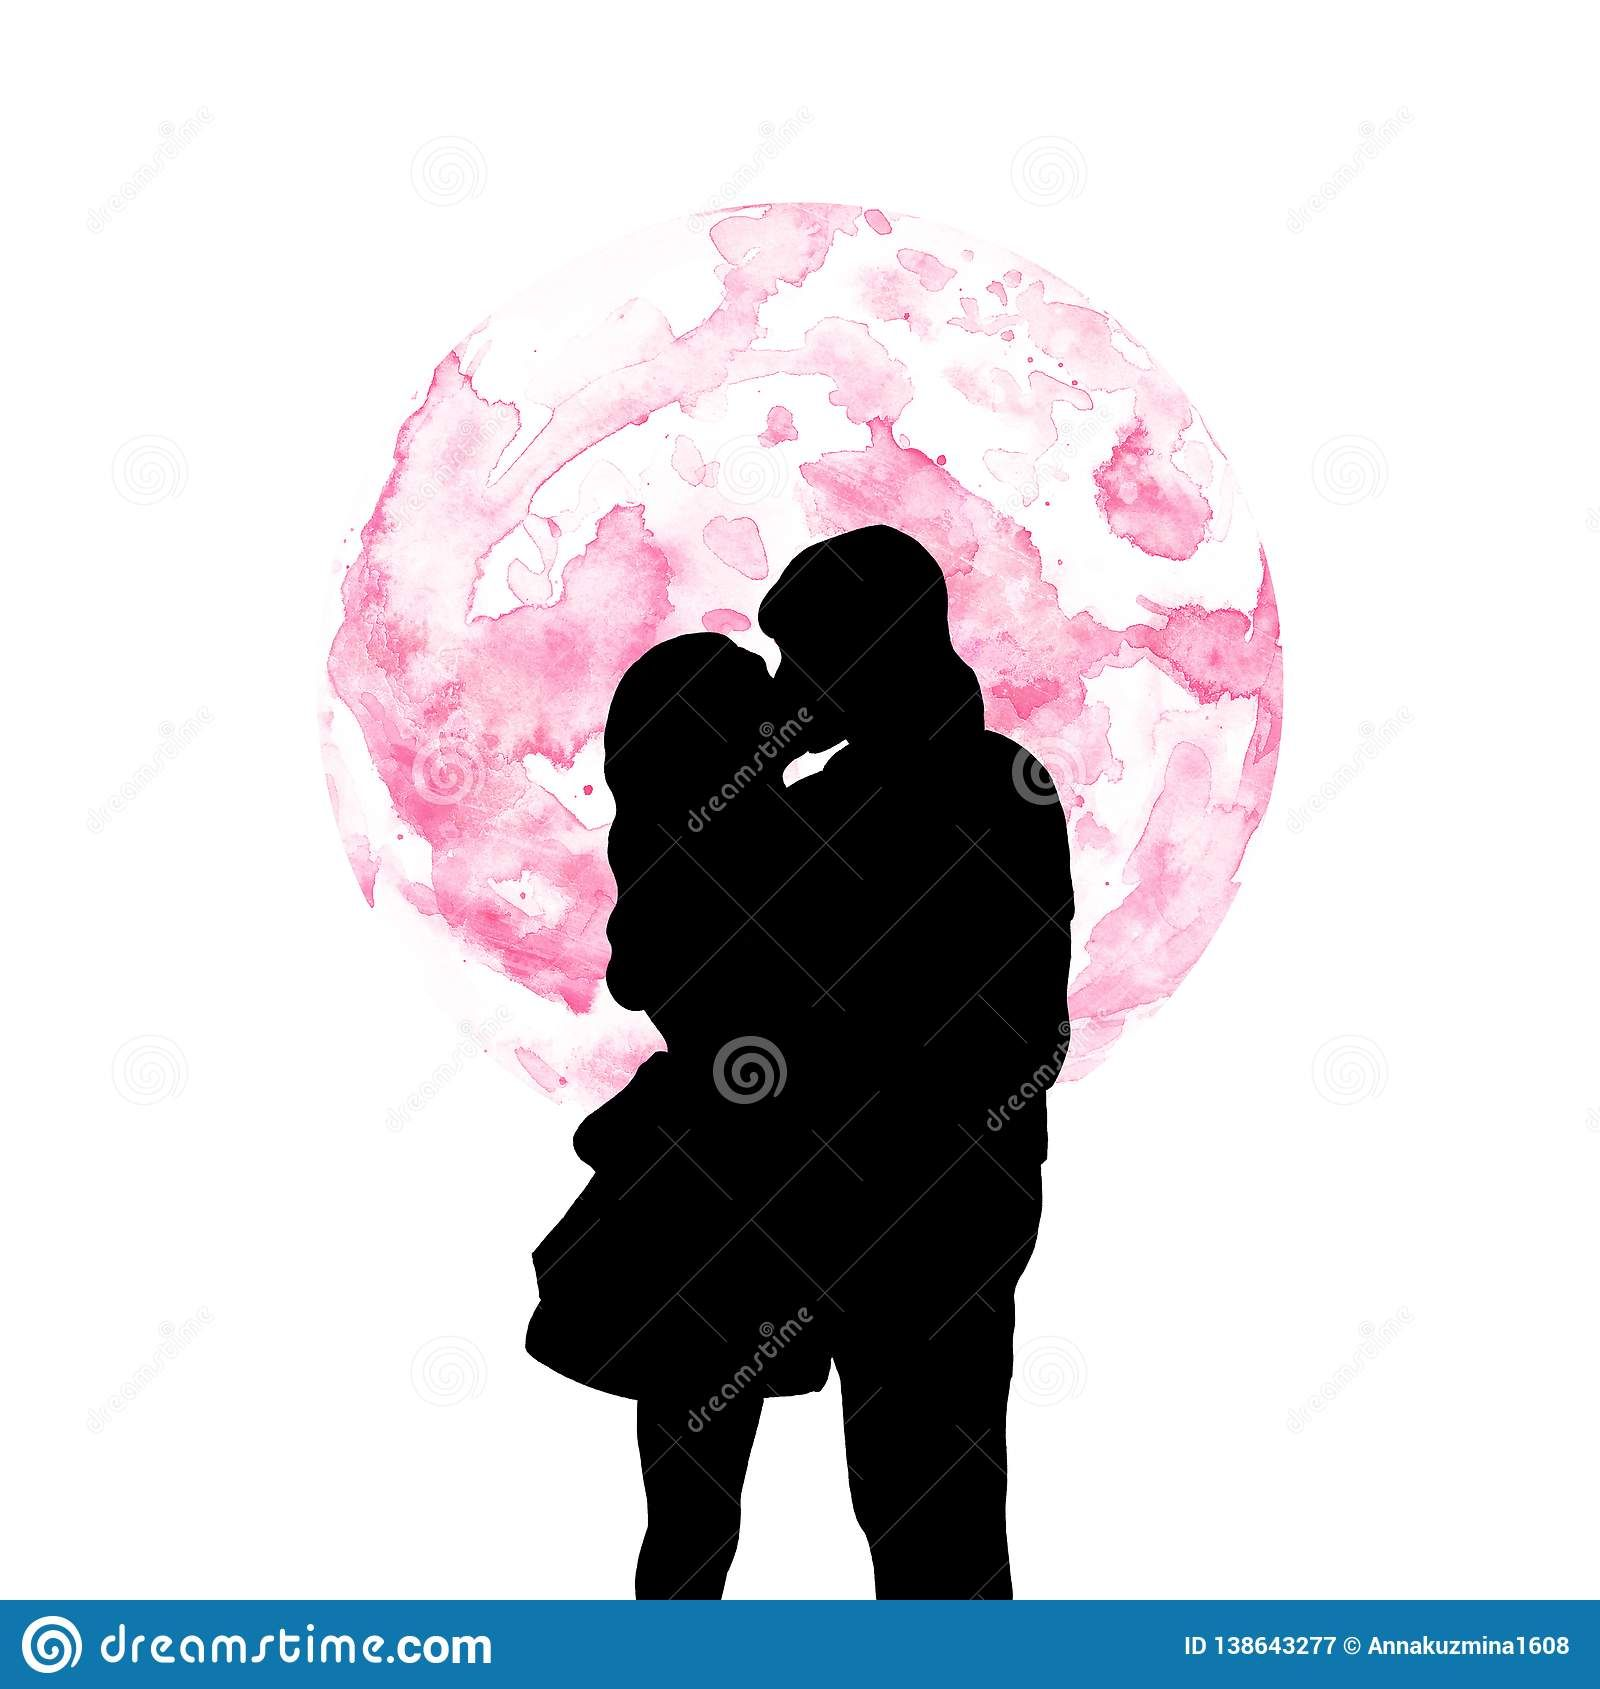 Hand Painted Silhouette Of Couple Kissing And Watercolor Pink Full